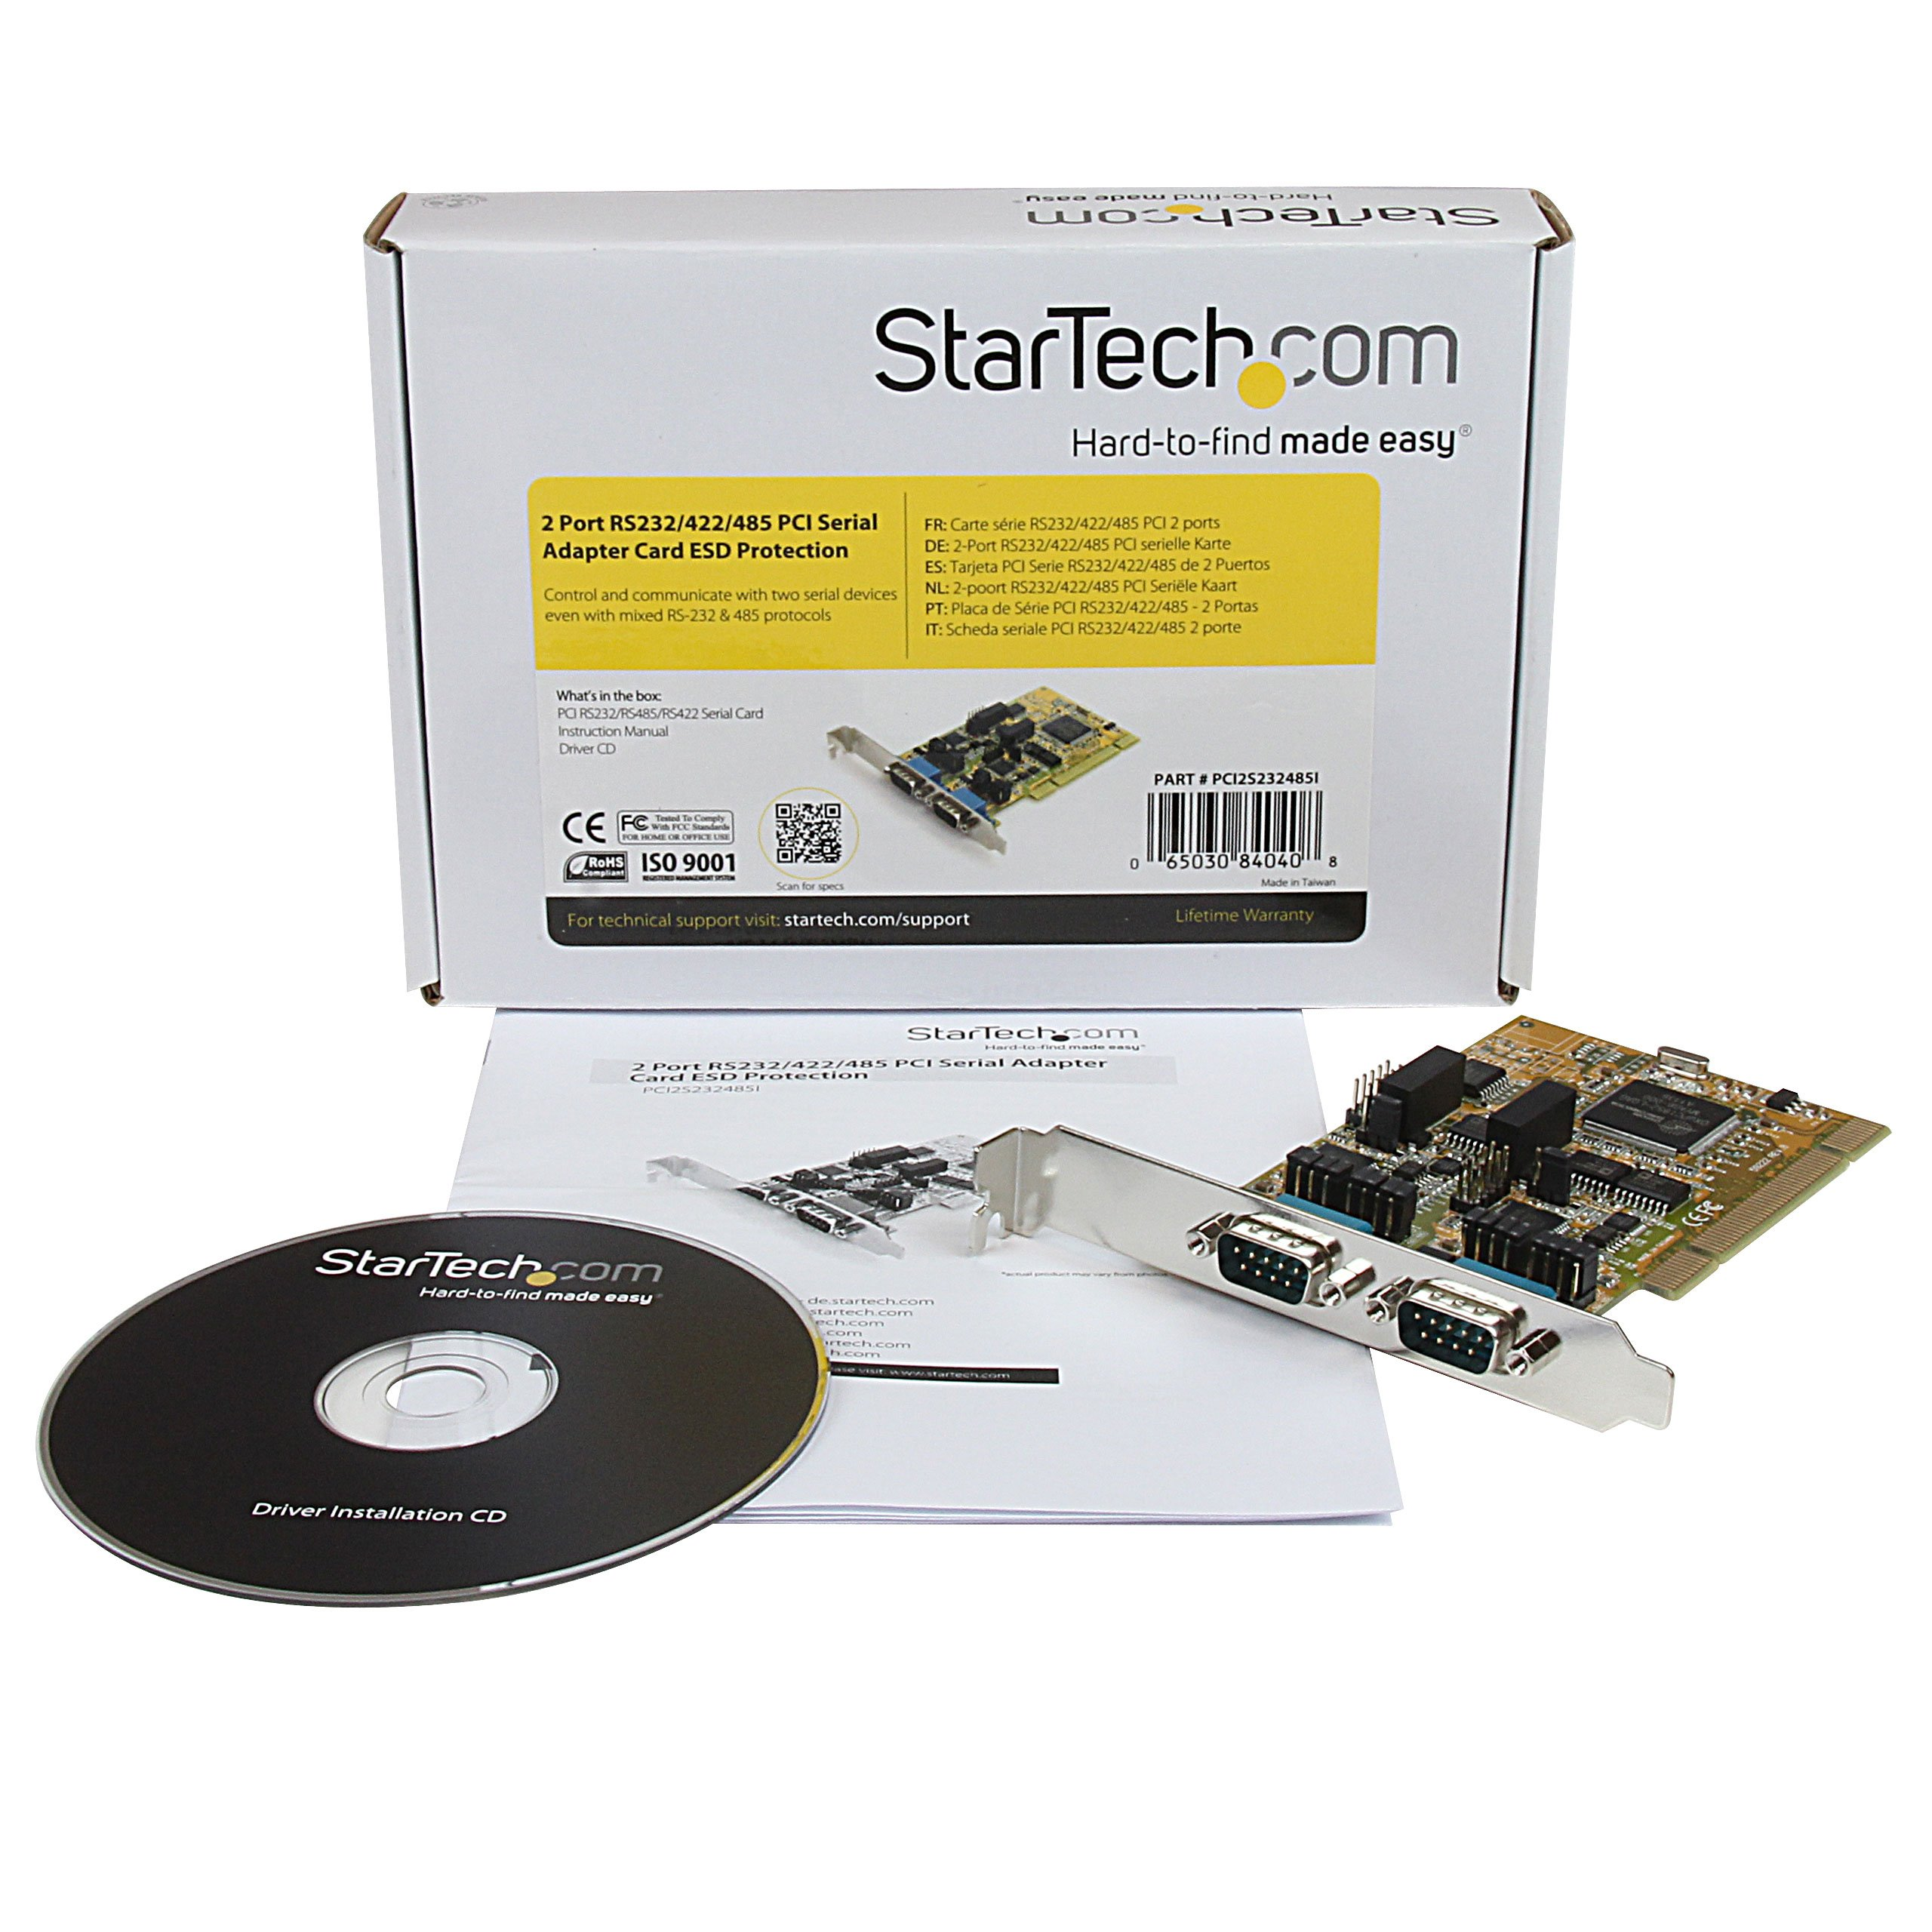 StarTech.com PCI2S232485I 2 Port RS232/422/485 PCI Serial Adapter Card with ESD Protection by StarTech (Image #5)